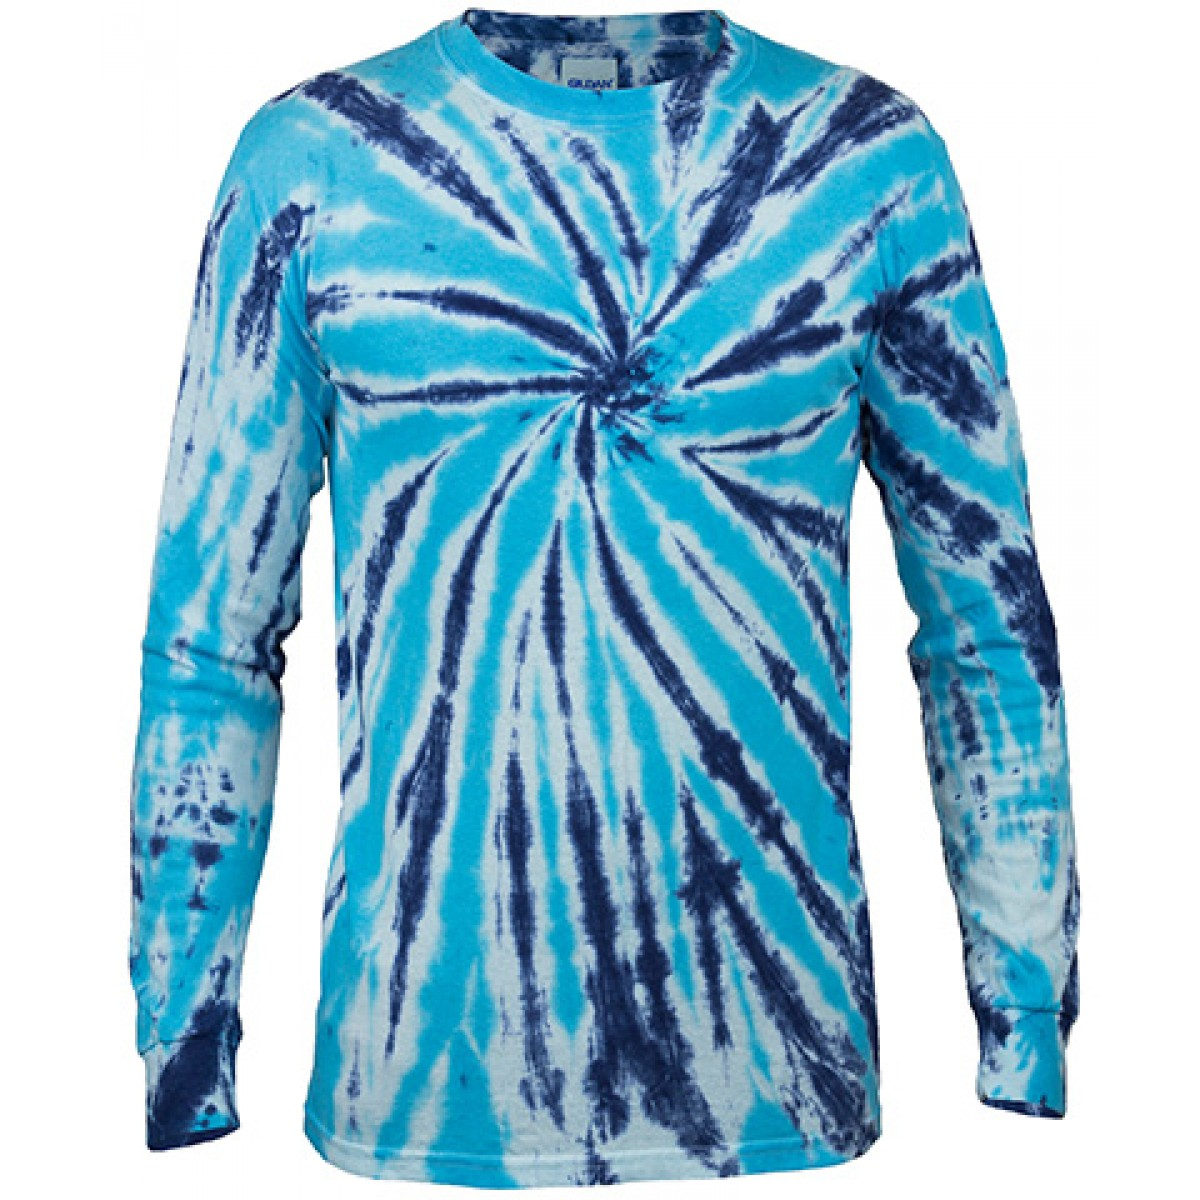 Multi Color Tie-Dye Long Sleeve Shirt -Royal Blue-L